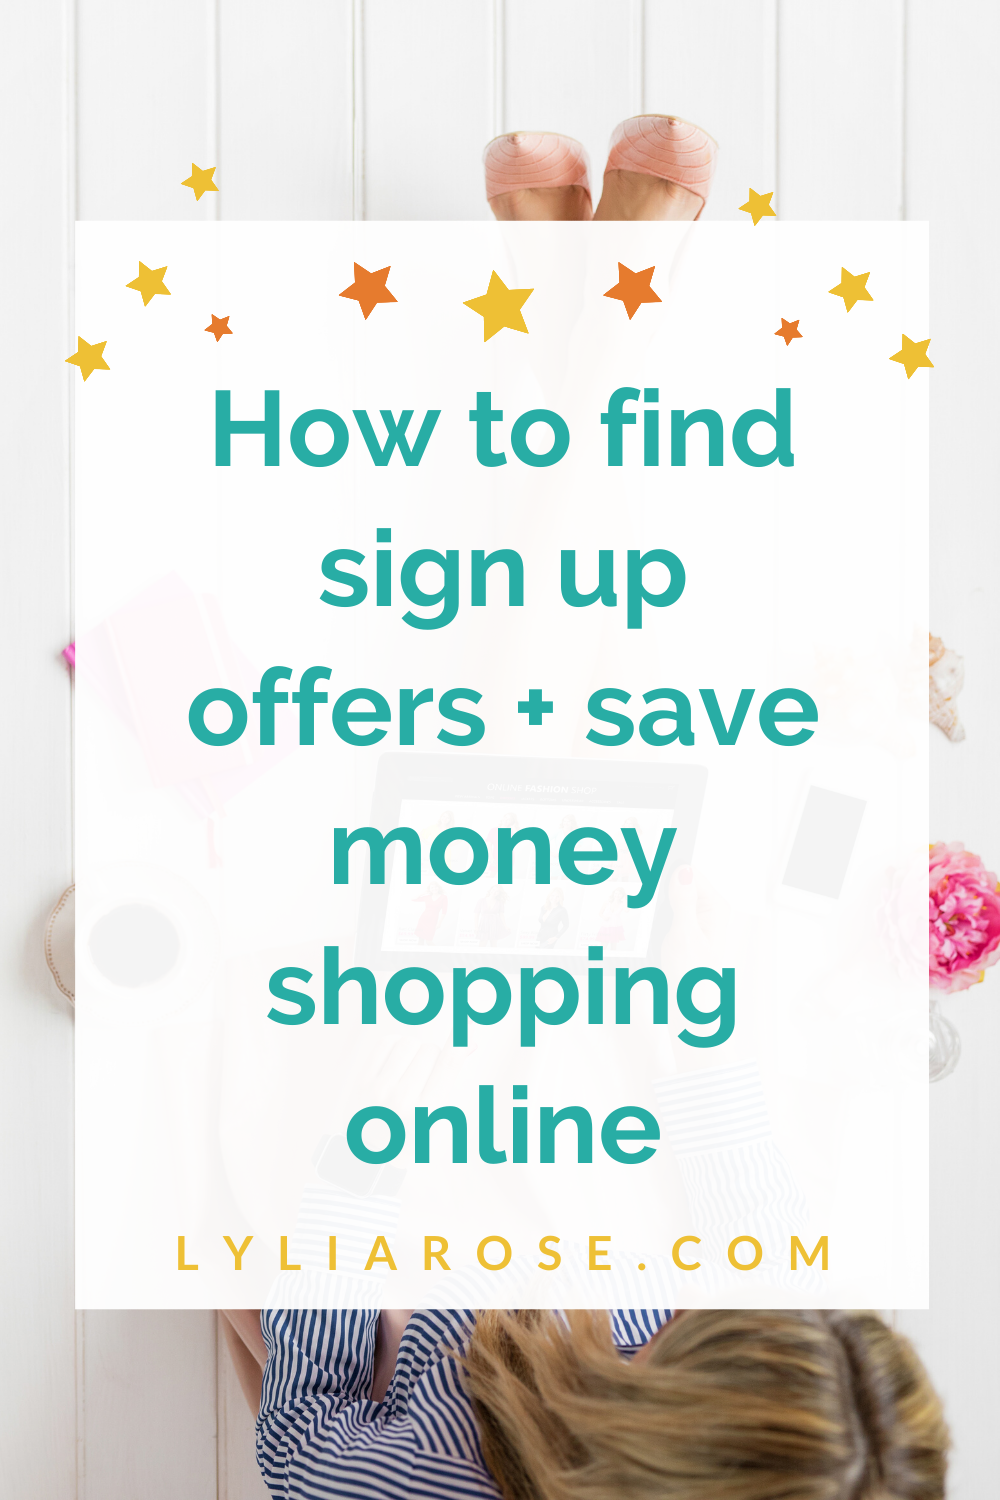 How to find sign up offers + save money shopping online (1)